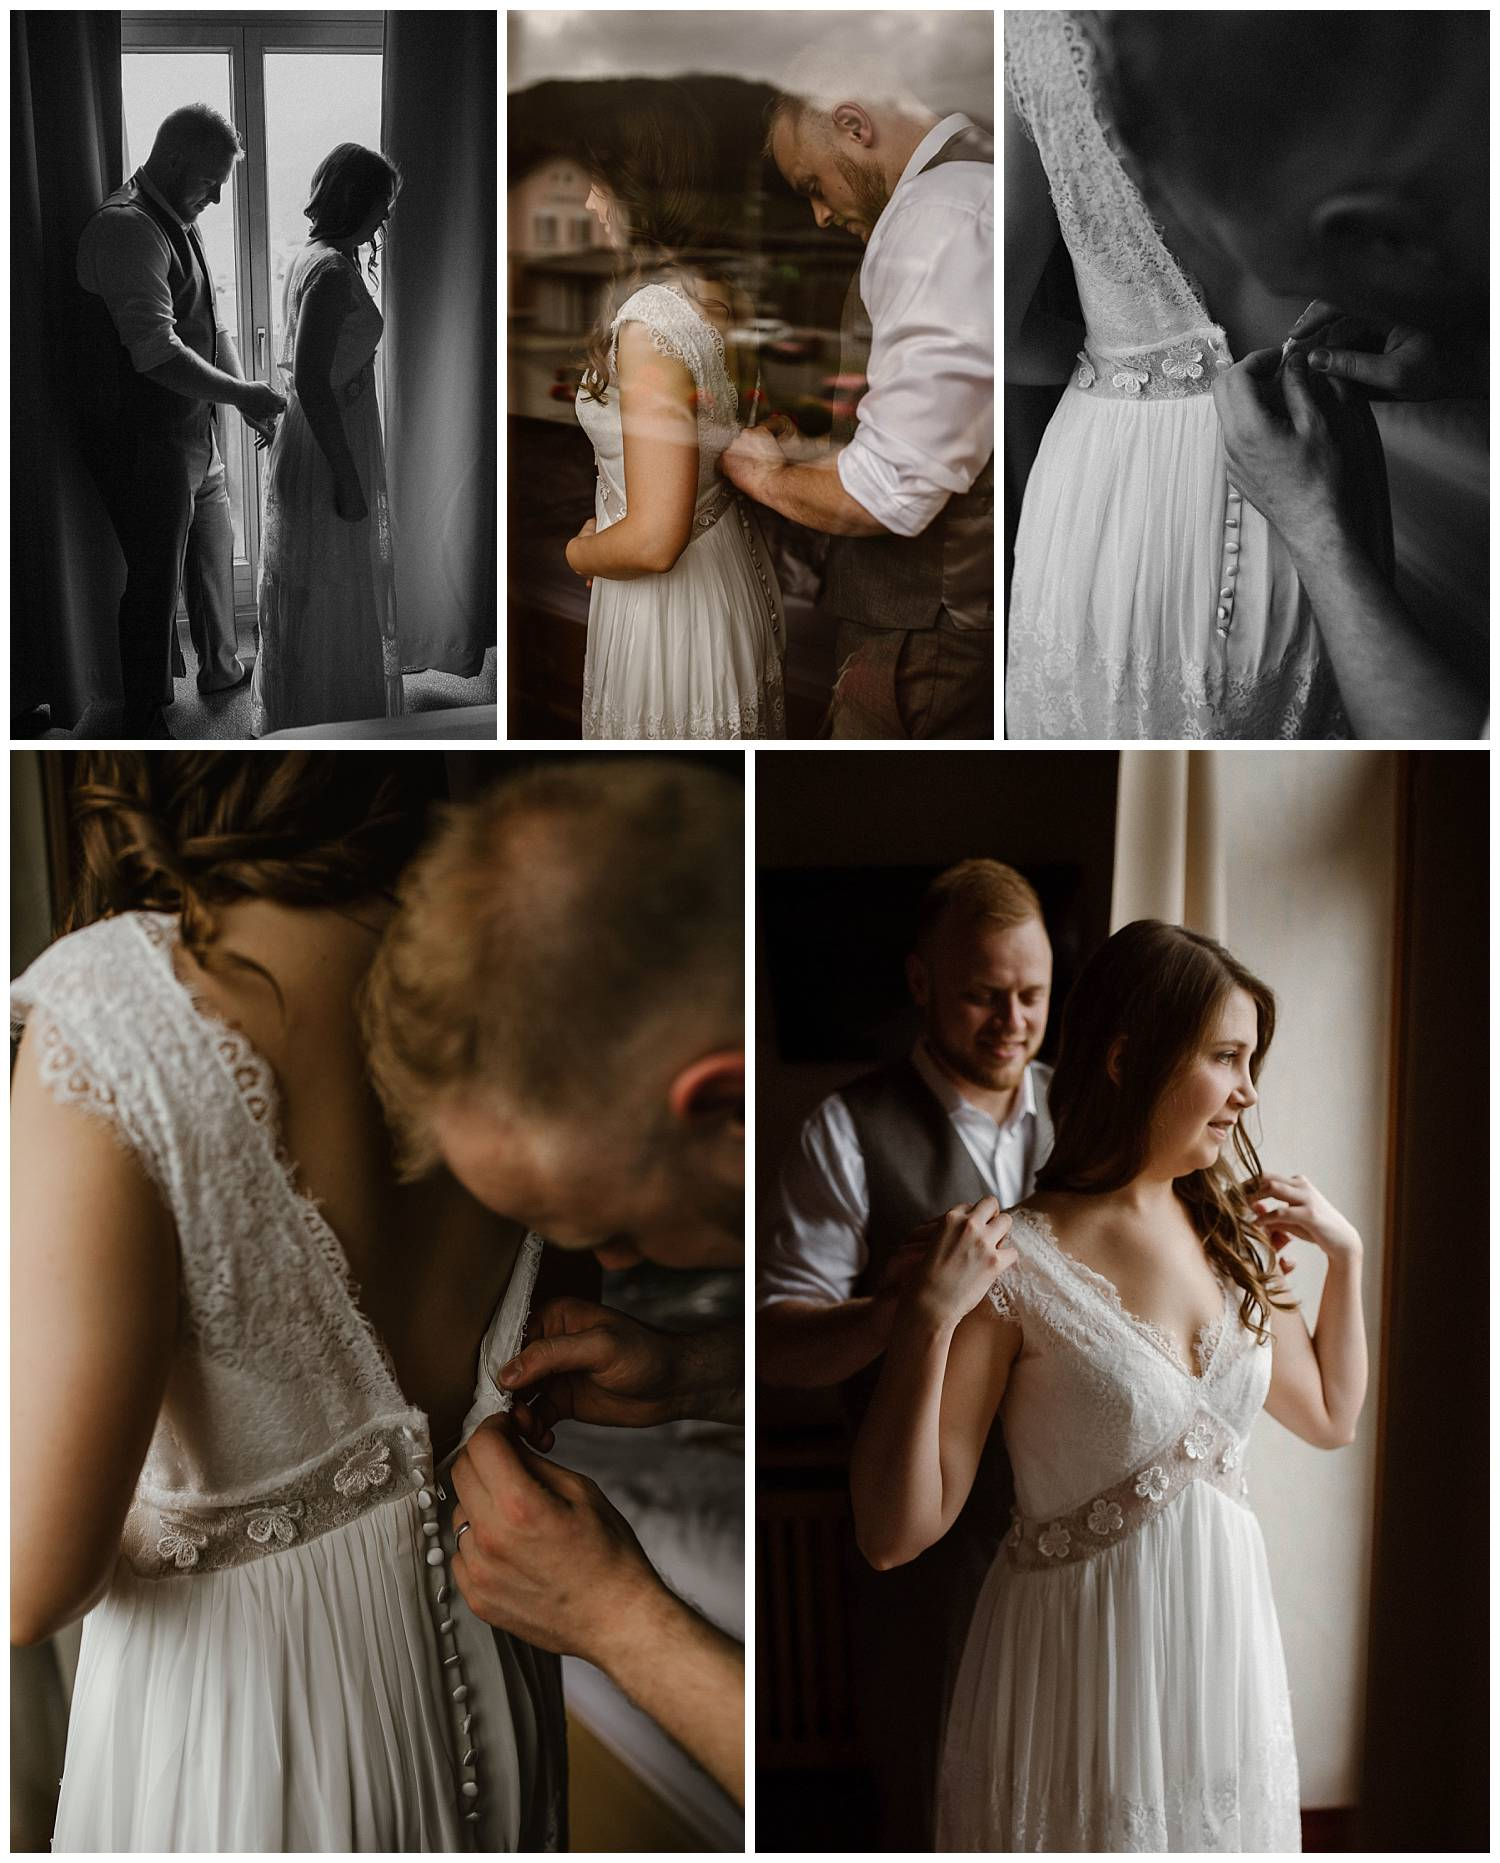 bride-and-groom-getting-ready-together-for-their-elopement